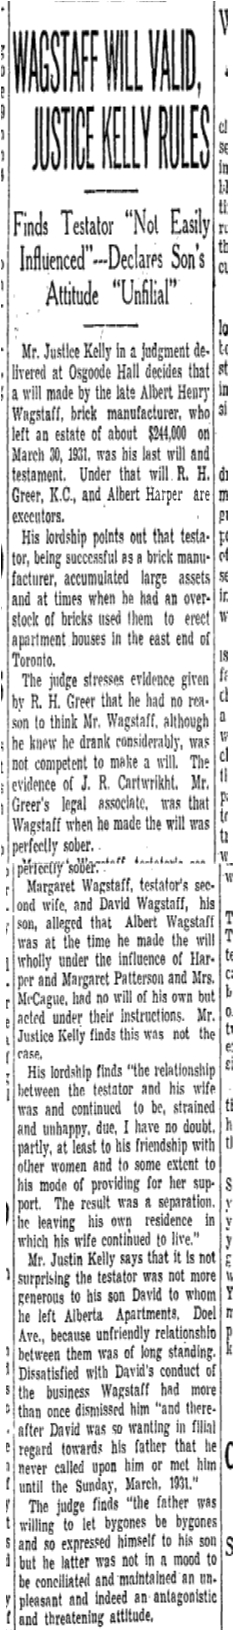 Justice Kelly very likely knew of Wagstaff's reputation even if he may not have known him personally. Toronto Star, November 12, 1932